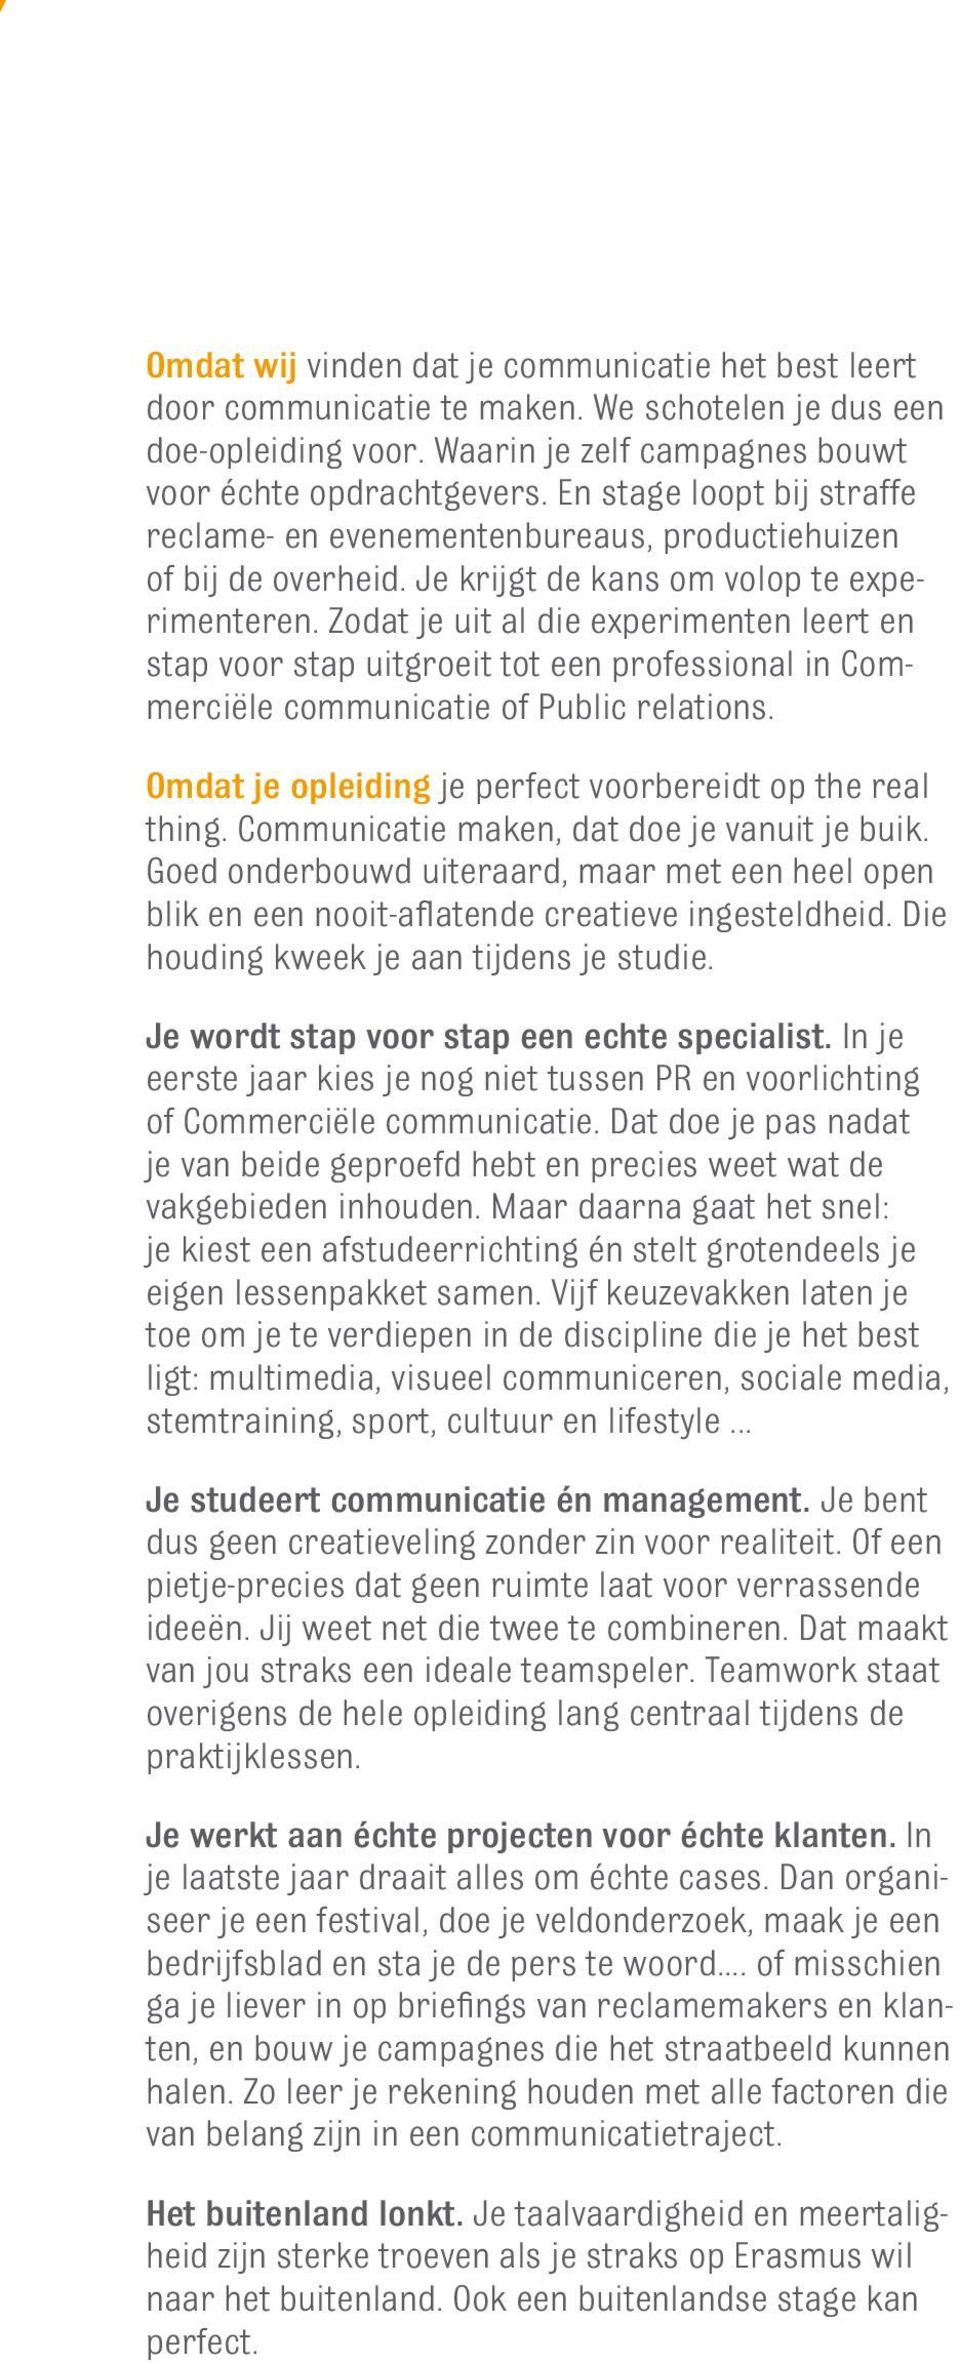 Zodat je uit al die experimenten leert en stap voor stap uitgroeit tot een professional in Commerciële communicatie of Public relations. Omdat je opleiding je perfect voorbereidt op the real thing.